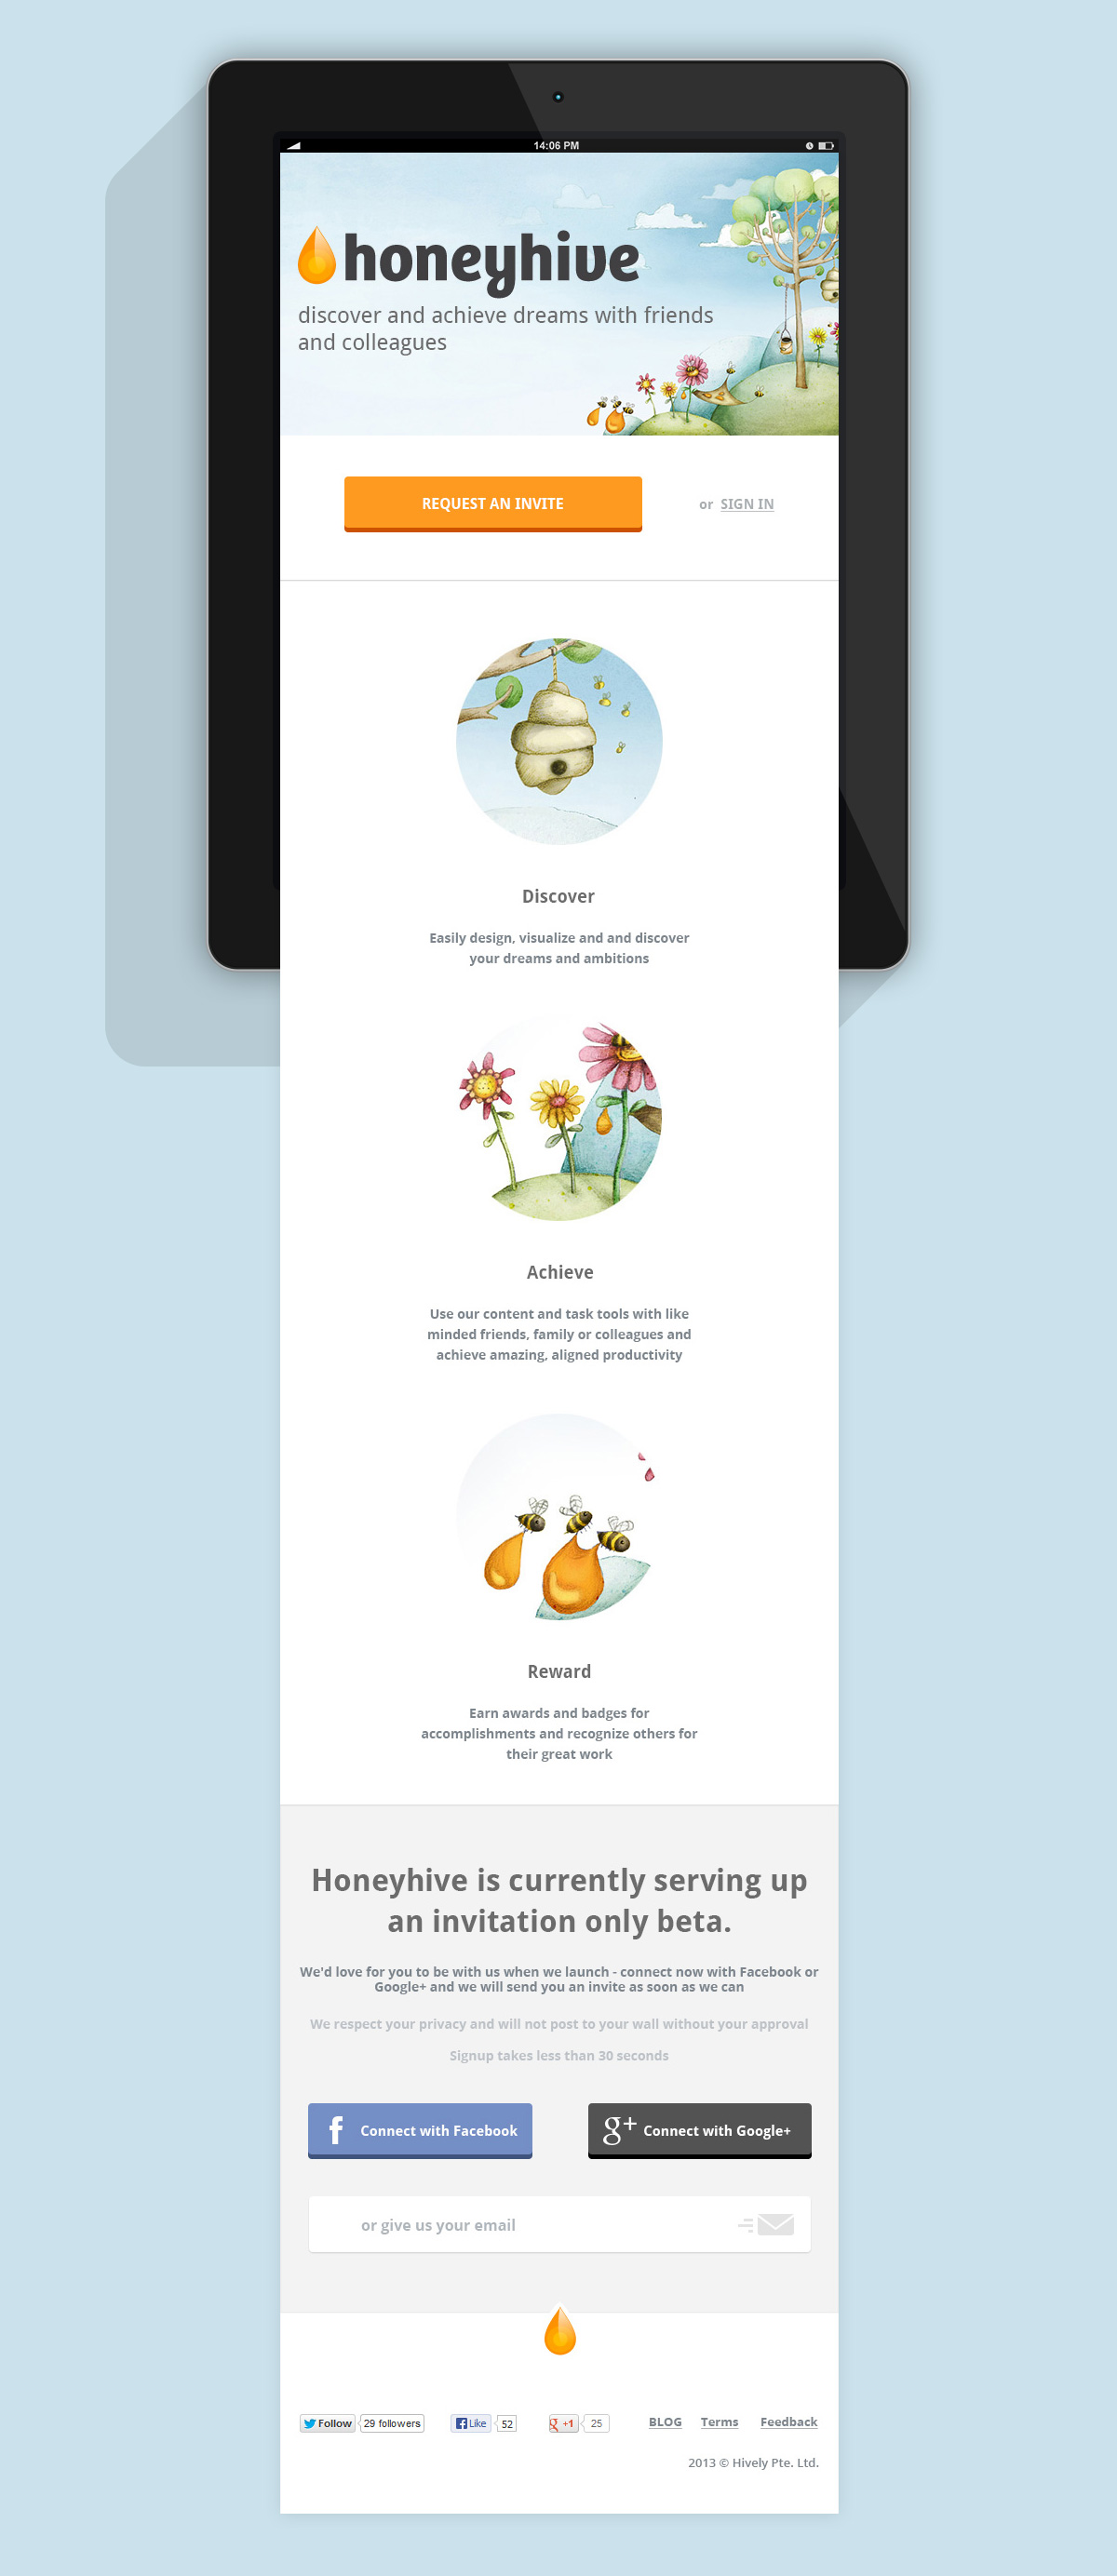 honeyhive-tablet-design